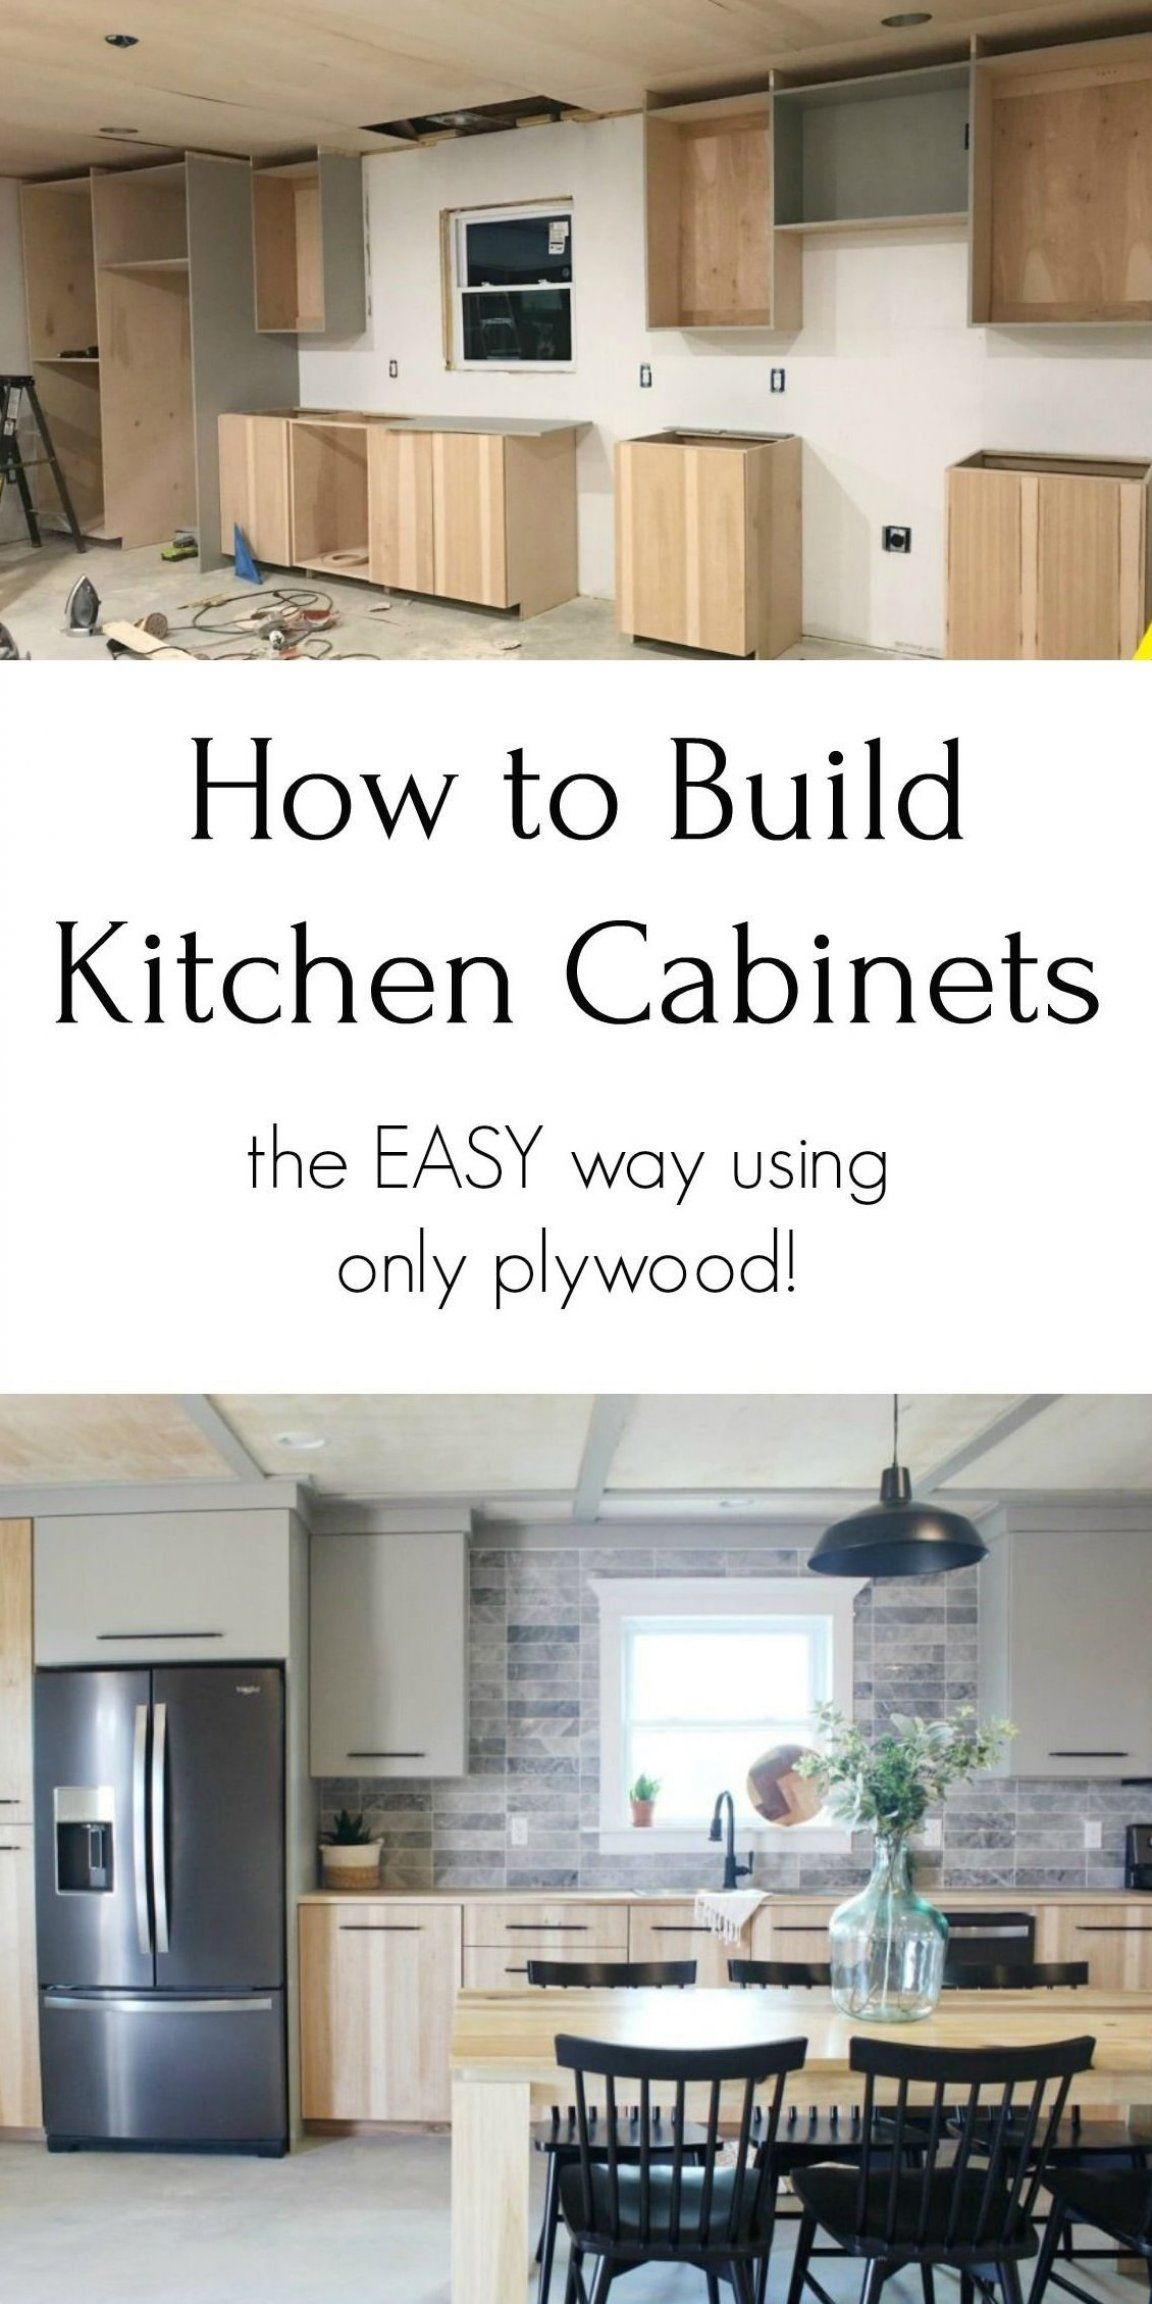 How To Build Your Own Kitchen Cabinets The Easy Way With Just Plywood Euro Style Ca In 2020 Kitchen Cabinets On A Budget Building Kitchen Cabinets Kitchen Design Diy